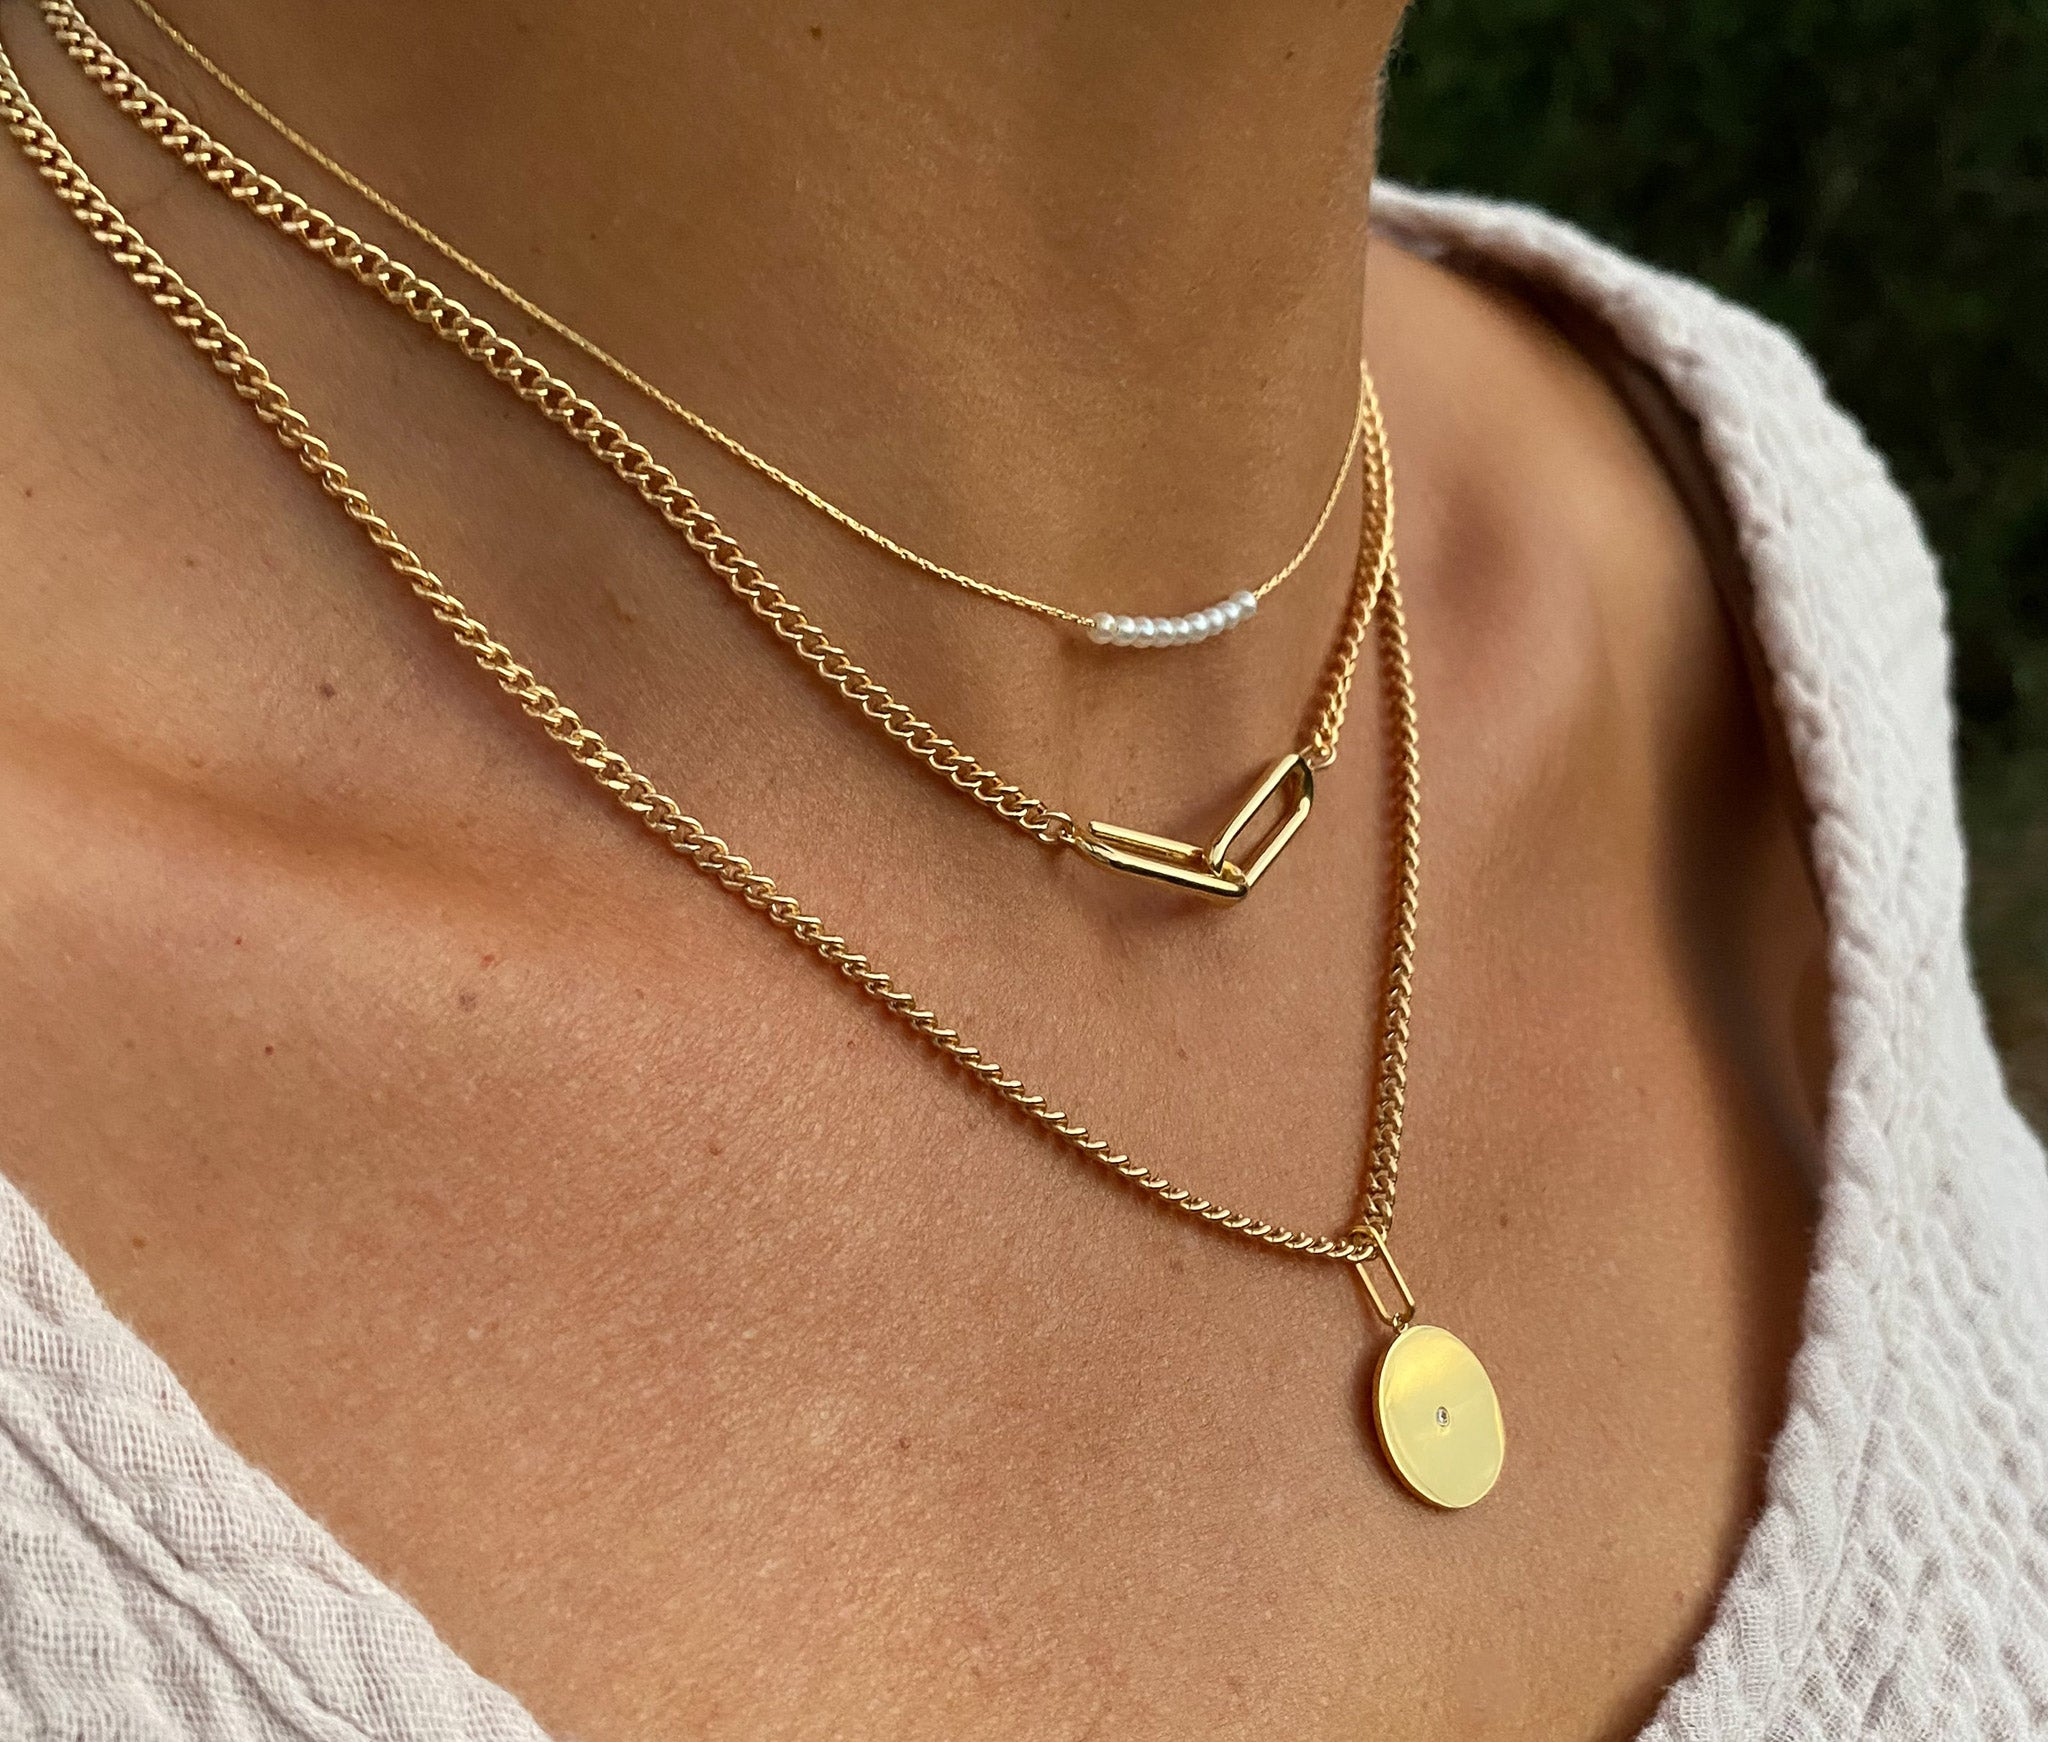 layered necklaces, women's jewelry, women's accessories, made in California, handmade, made by hand, 14k gold, mix and match, everyday wear, opal, alchemy, zodiac, symbols, talisman, engrave, customized, made by women for women, made with love